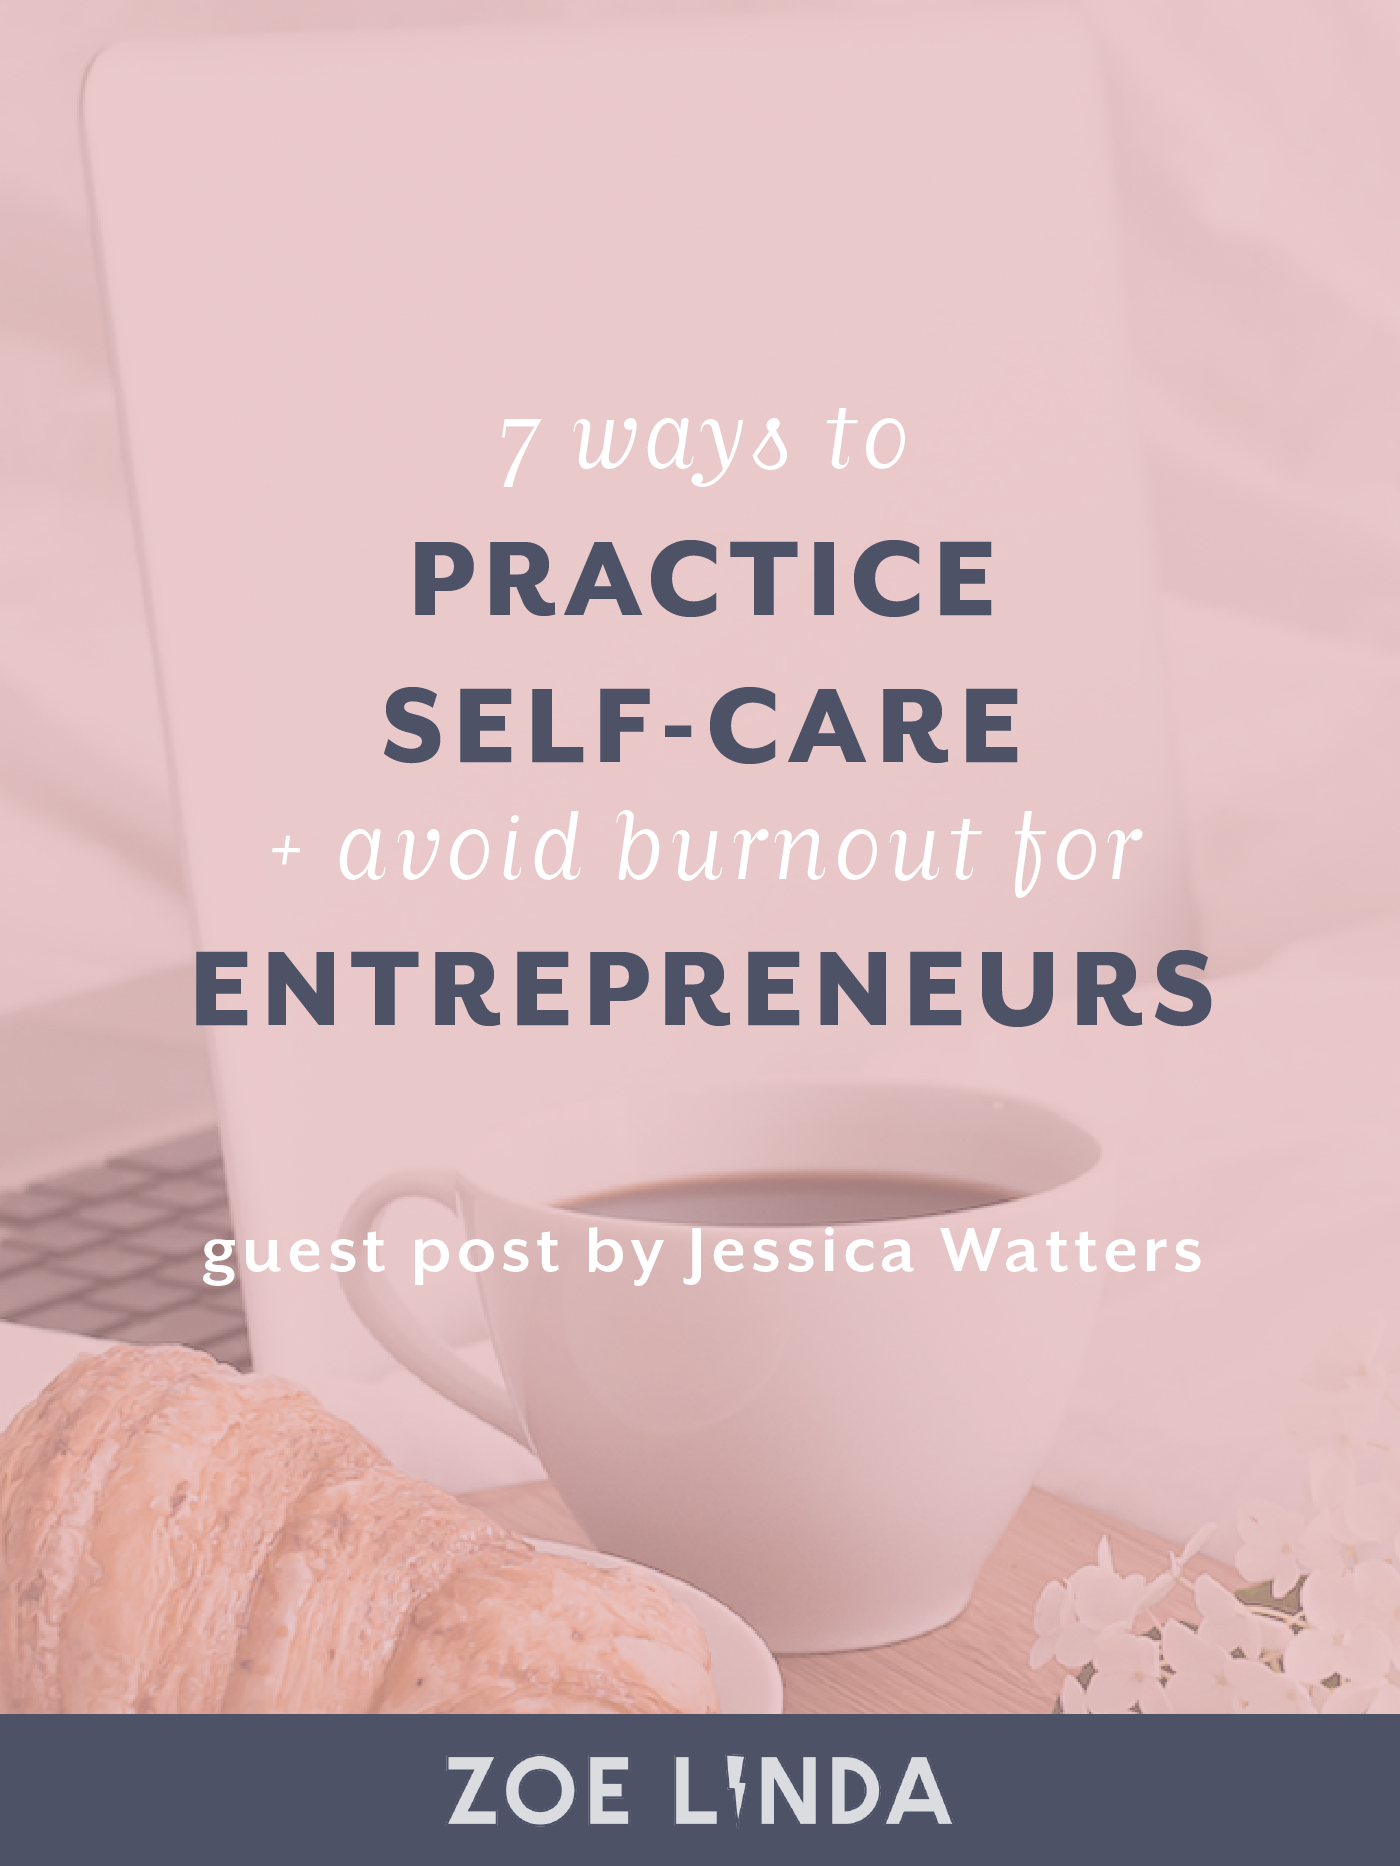 7 Ways To Practice Self-Care And Avoid Burnout For Entrepreneurs | Ever feel like you're on the edge of overwhelm and burnout? Practice self-care to avoid stress and burnout in your business! This guest post is perfect for bloggers, creative entrepreneurs, and small business owners! Click through to read the whole article.